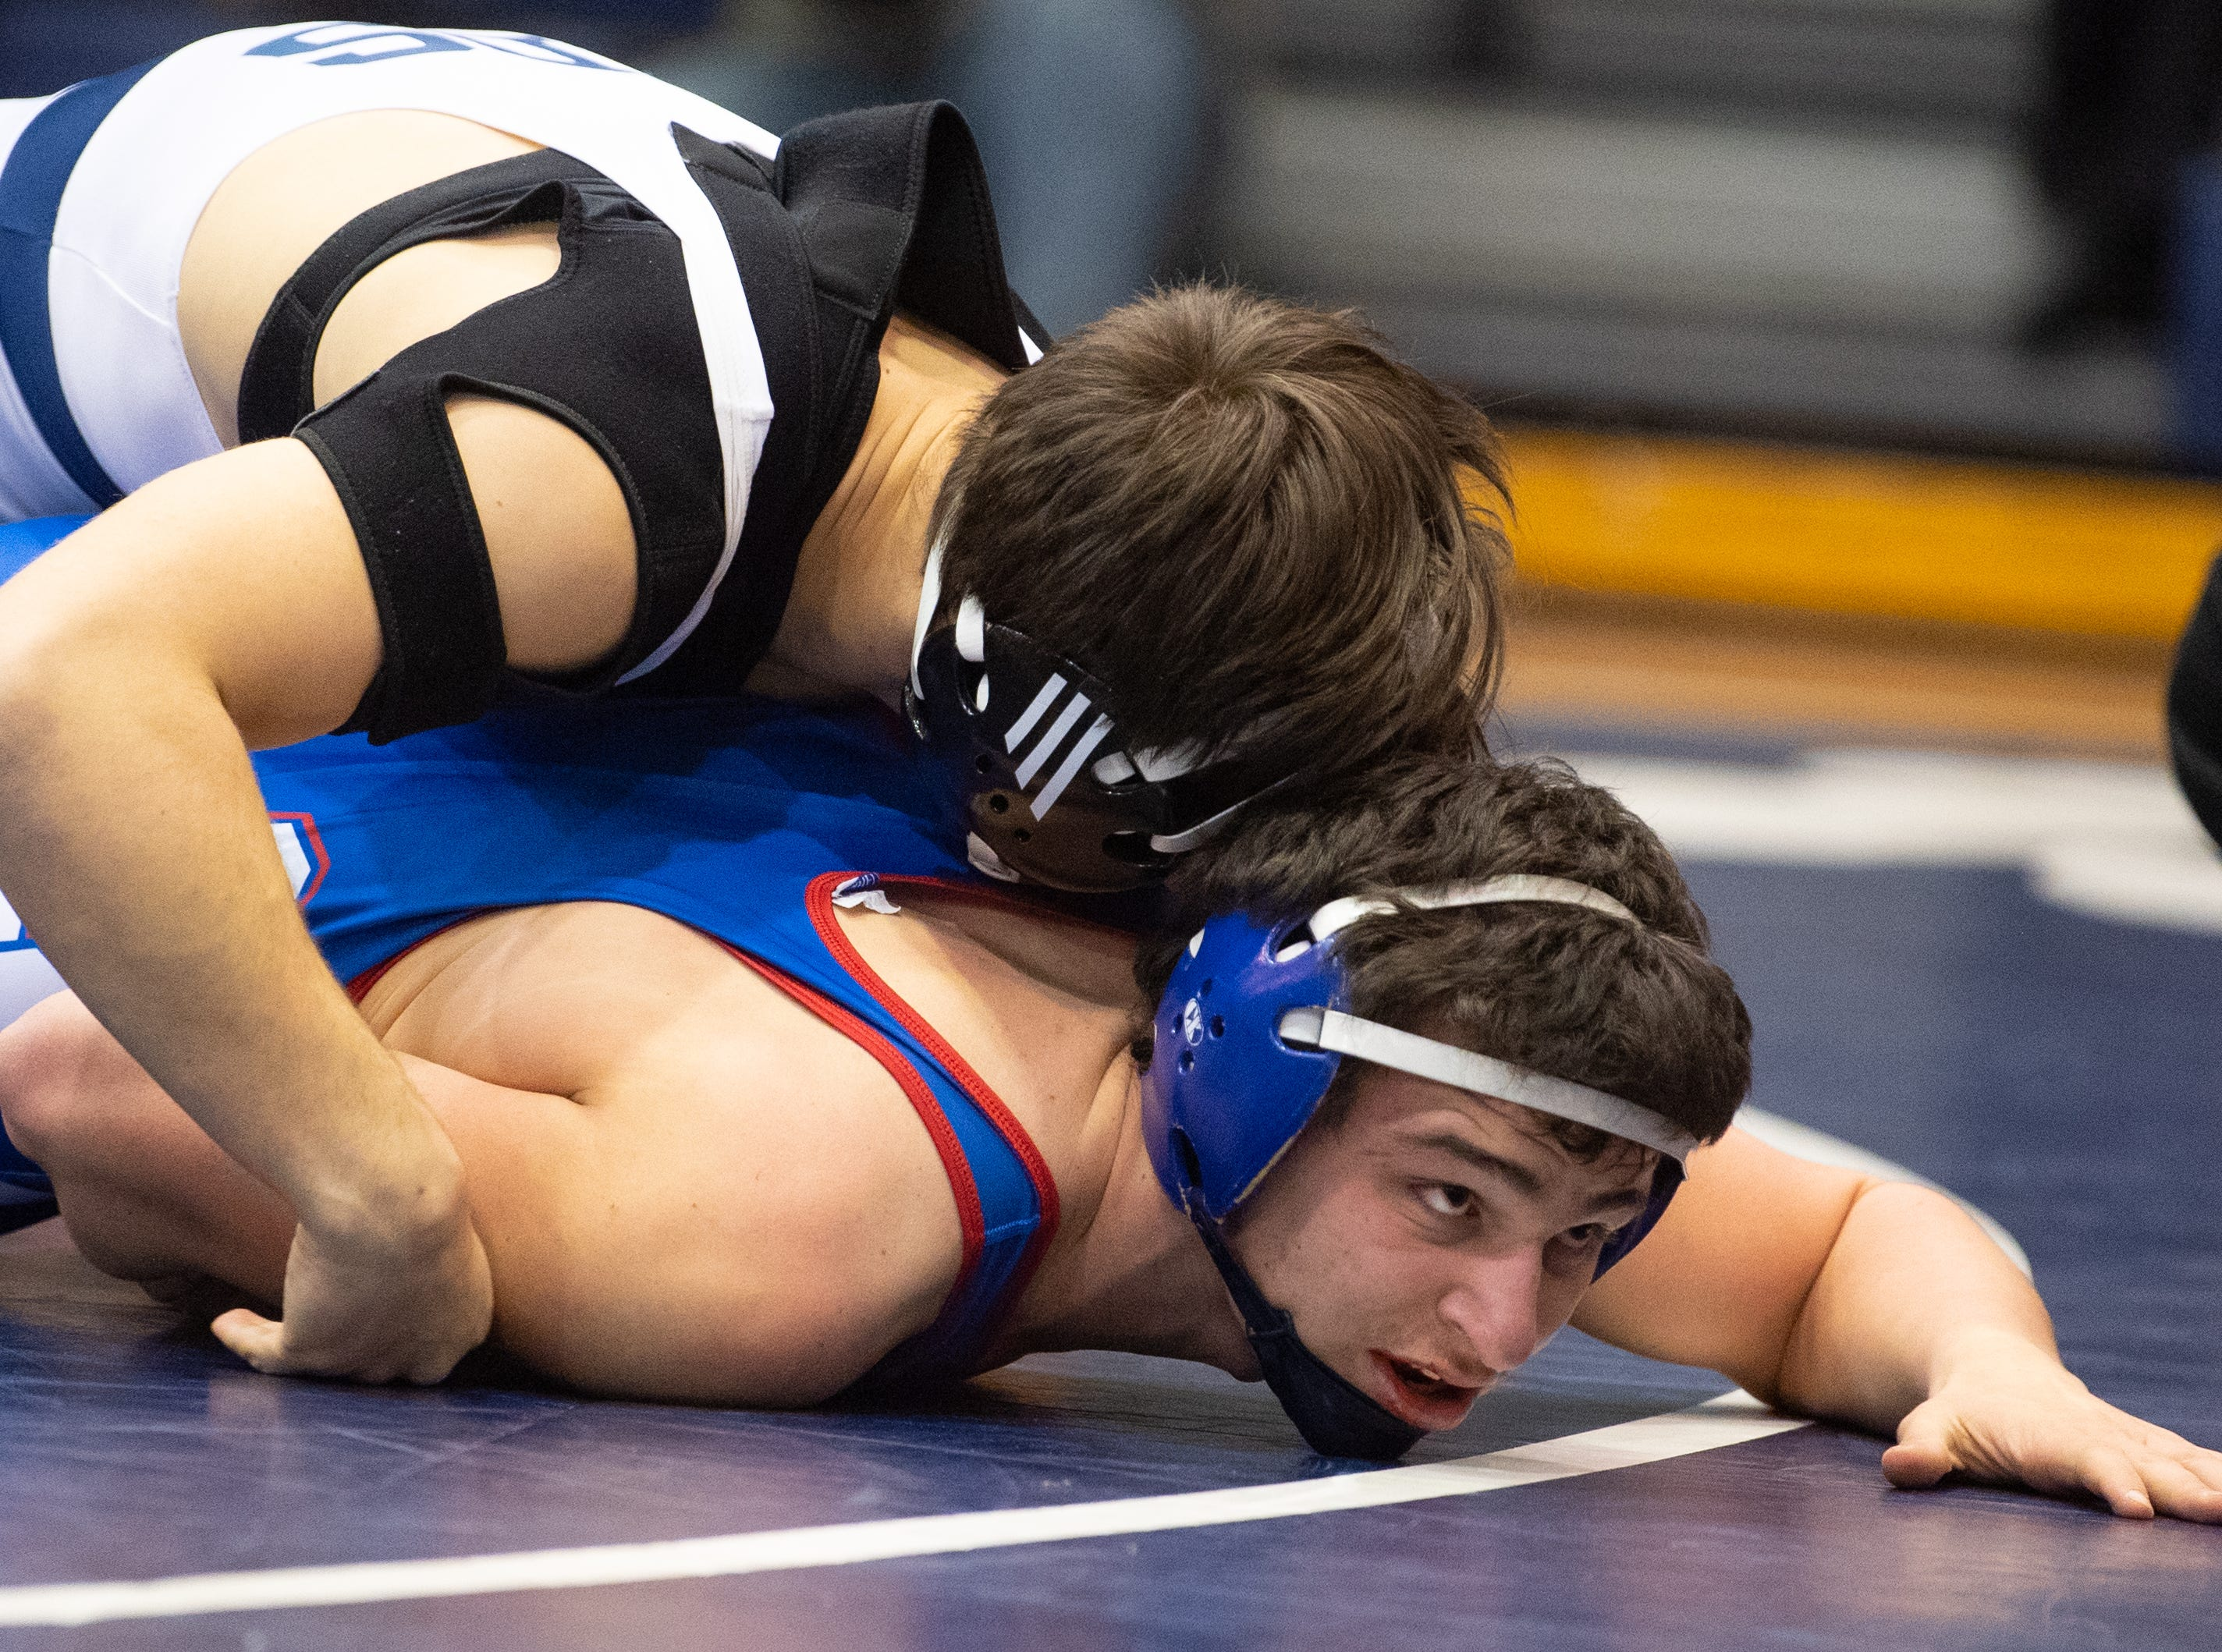 Camden Rice of Spring Grove crawls out of the circle during the wrestling dual meet between Dallastown and Spring Grove at Dallastown Area High School, January 17, 2019. The Wildcats defeated the Rockets 46-24.